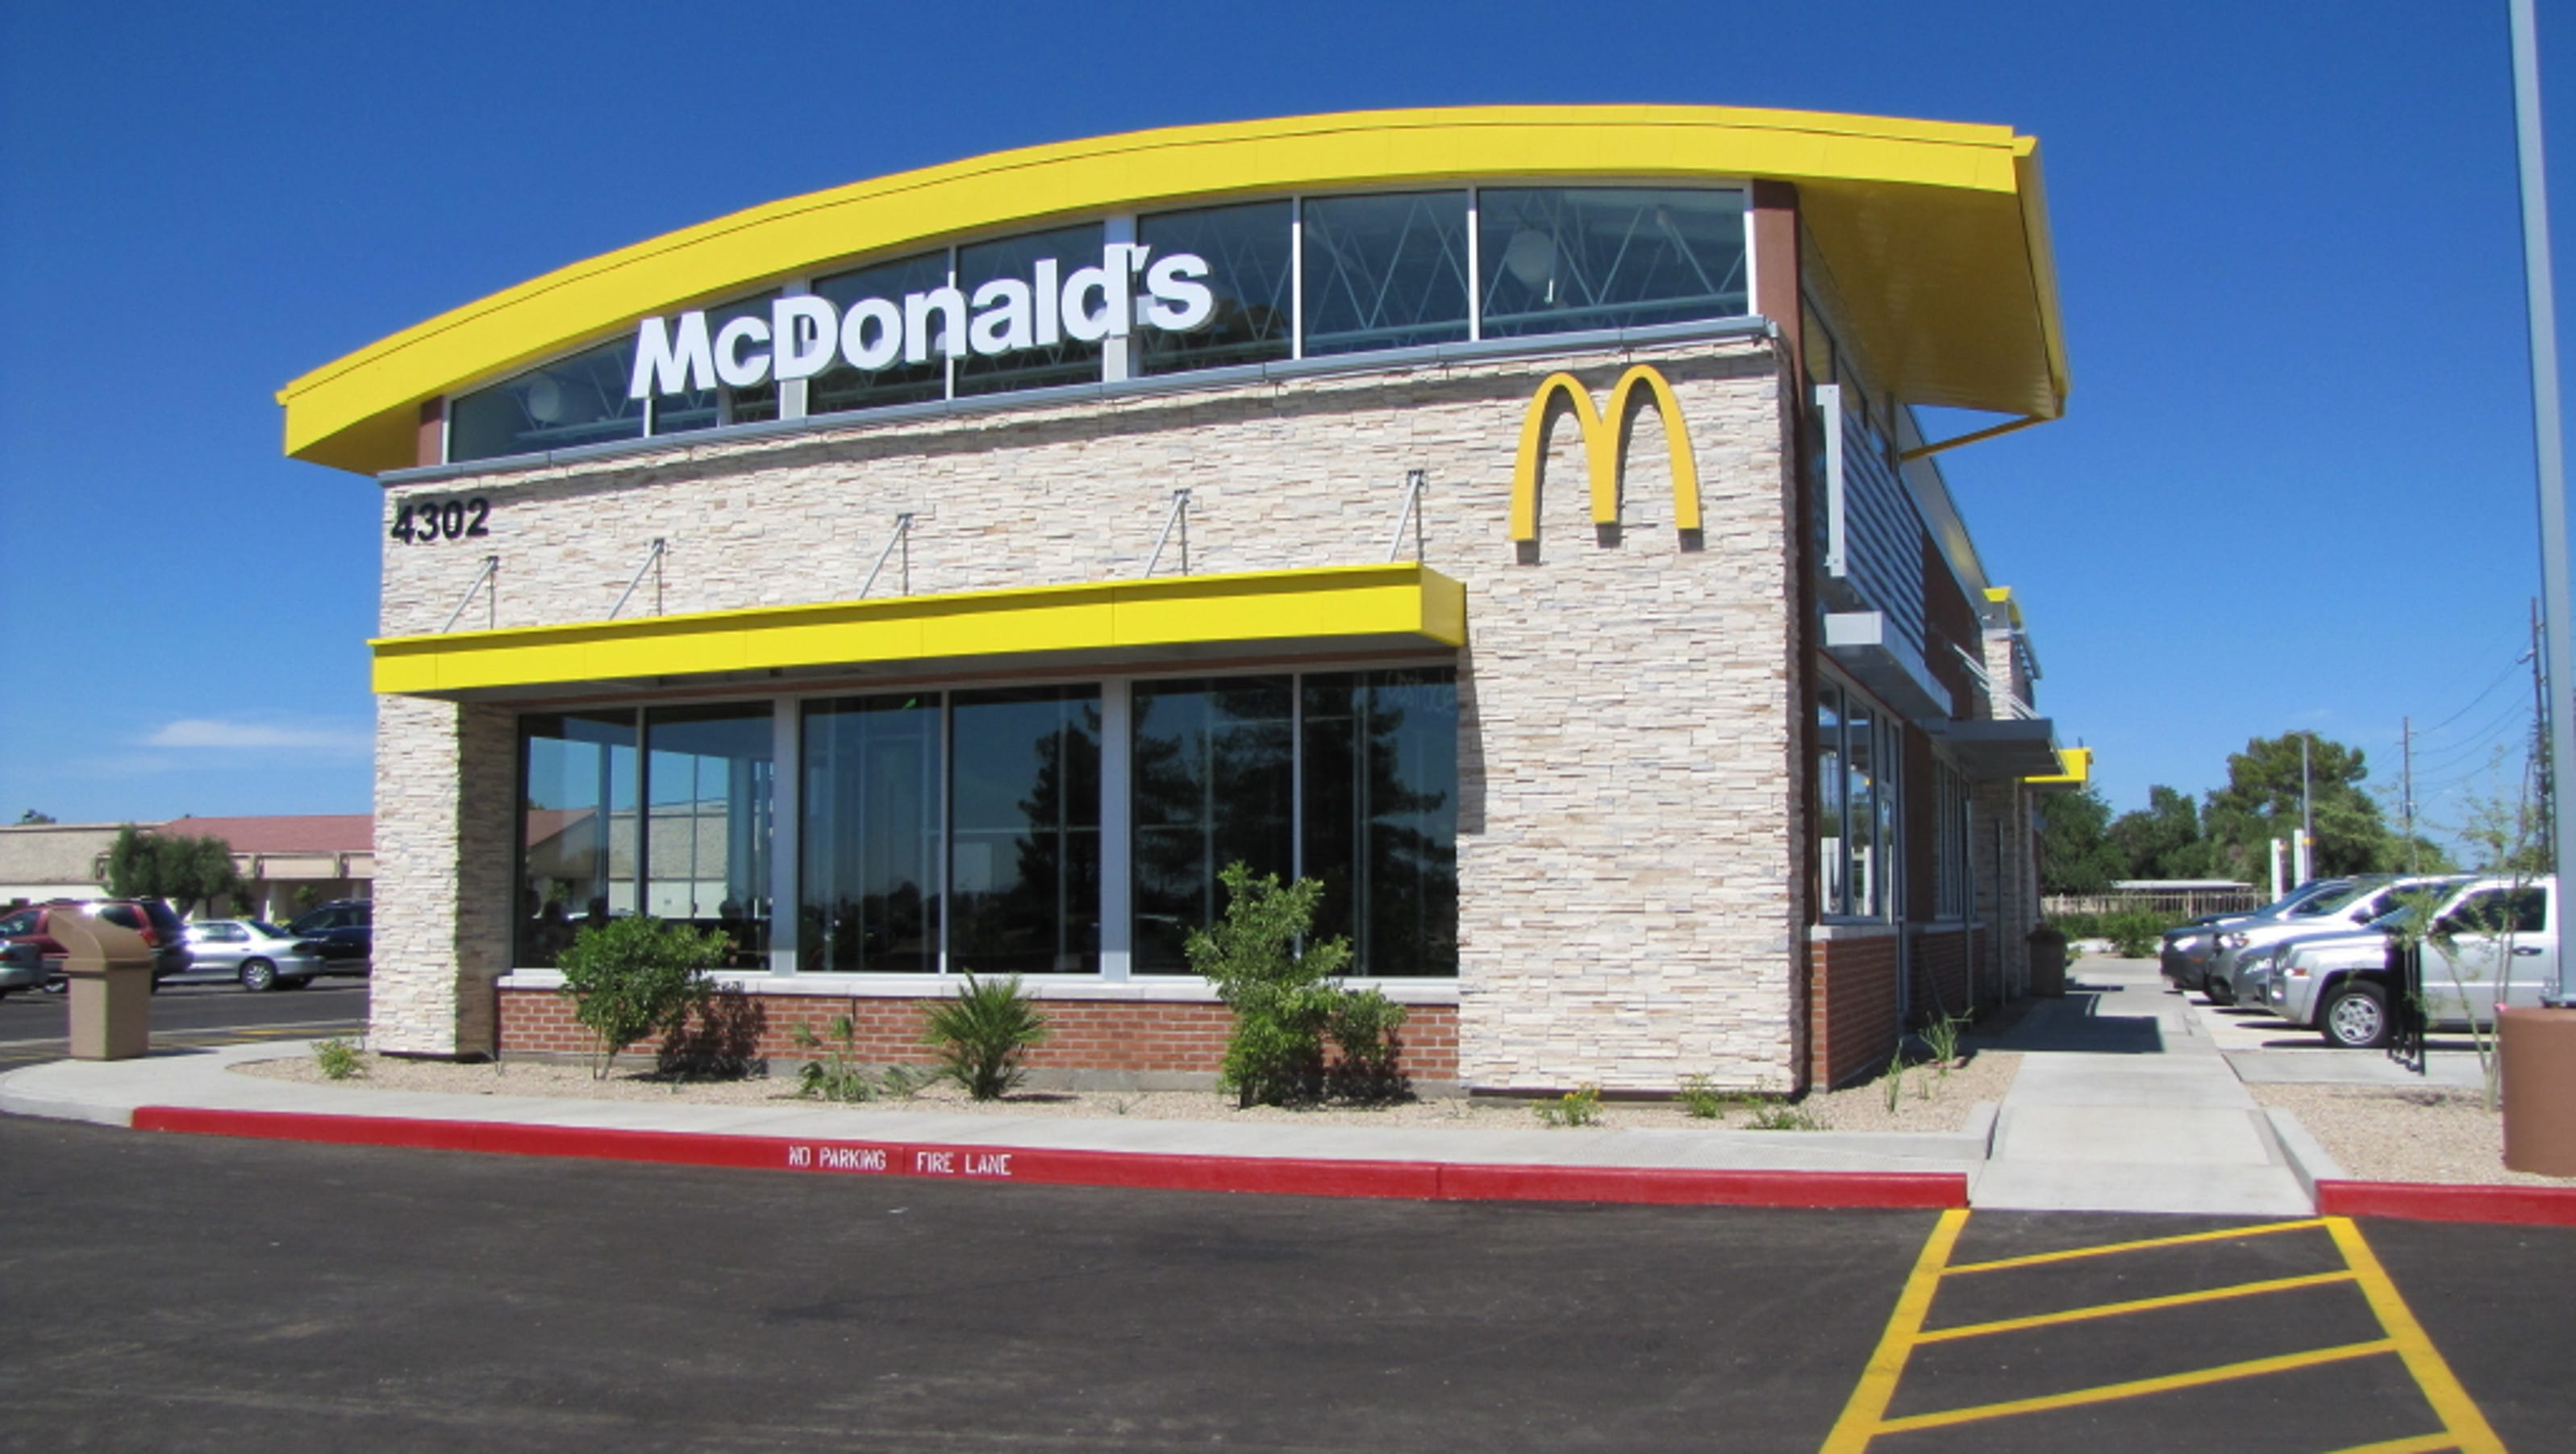 Deals at glendale mcdonald 39 s for weekend reopening for Mcdonalds exterior design